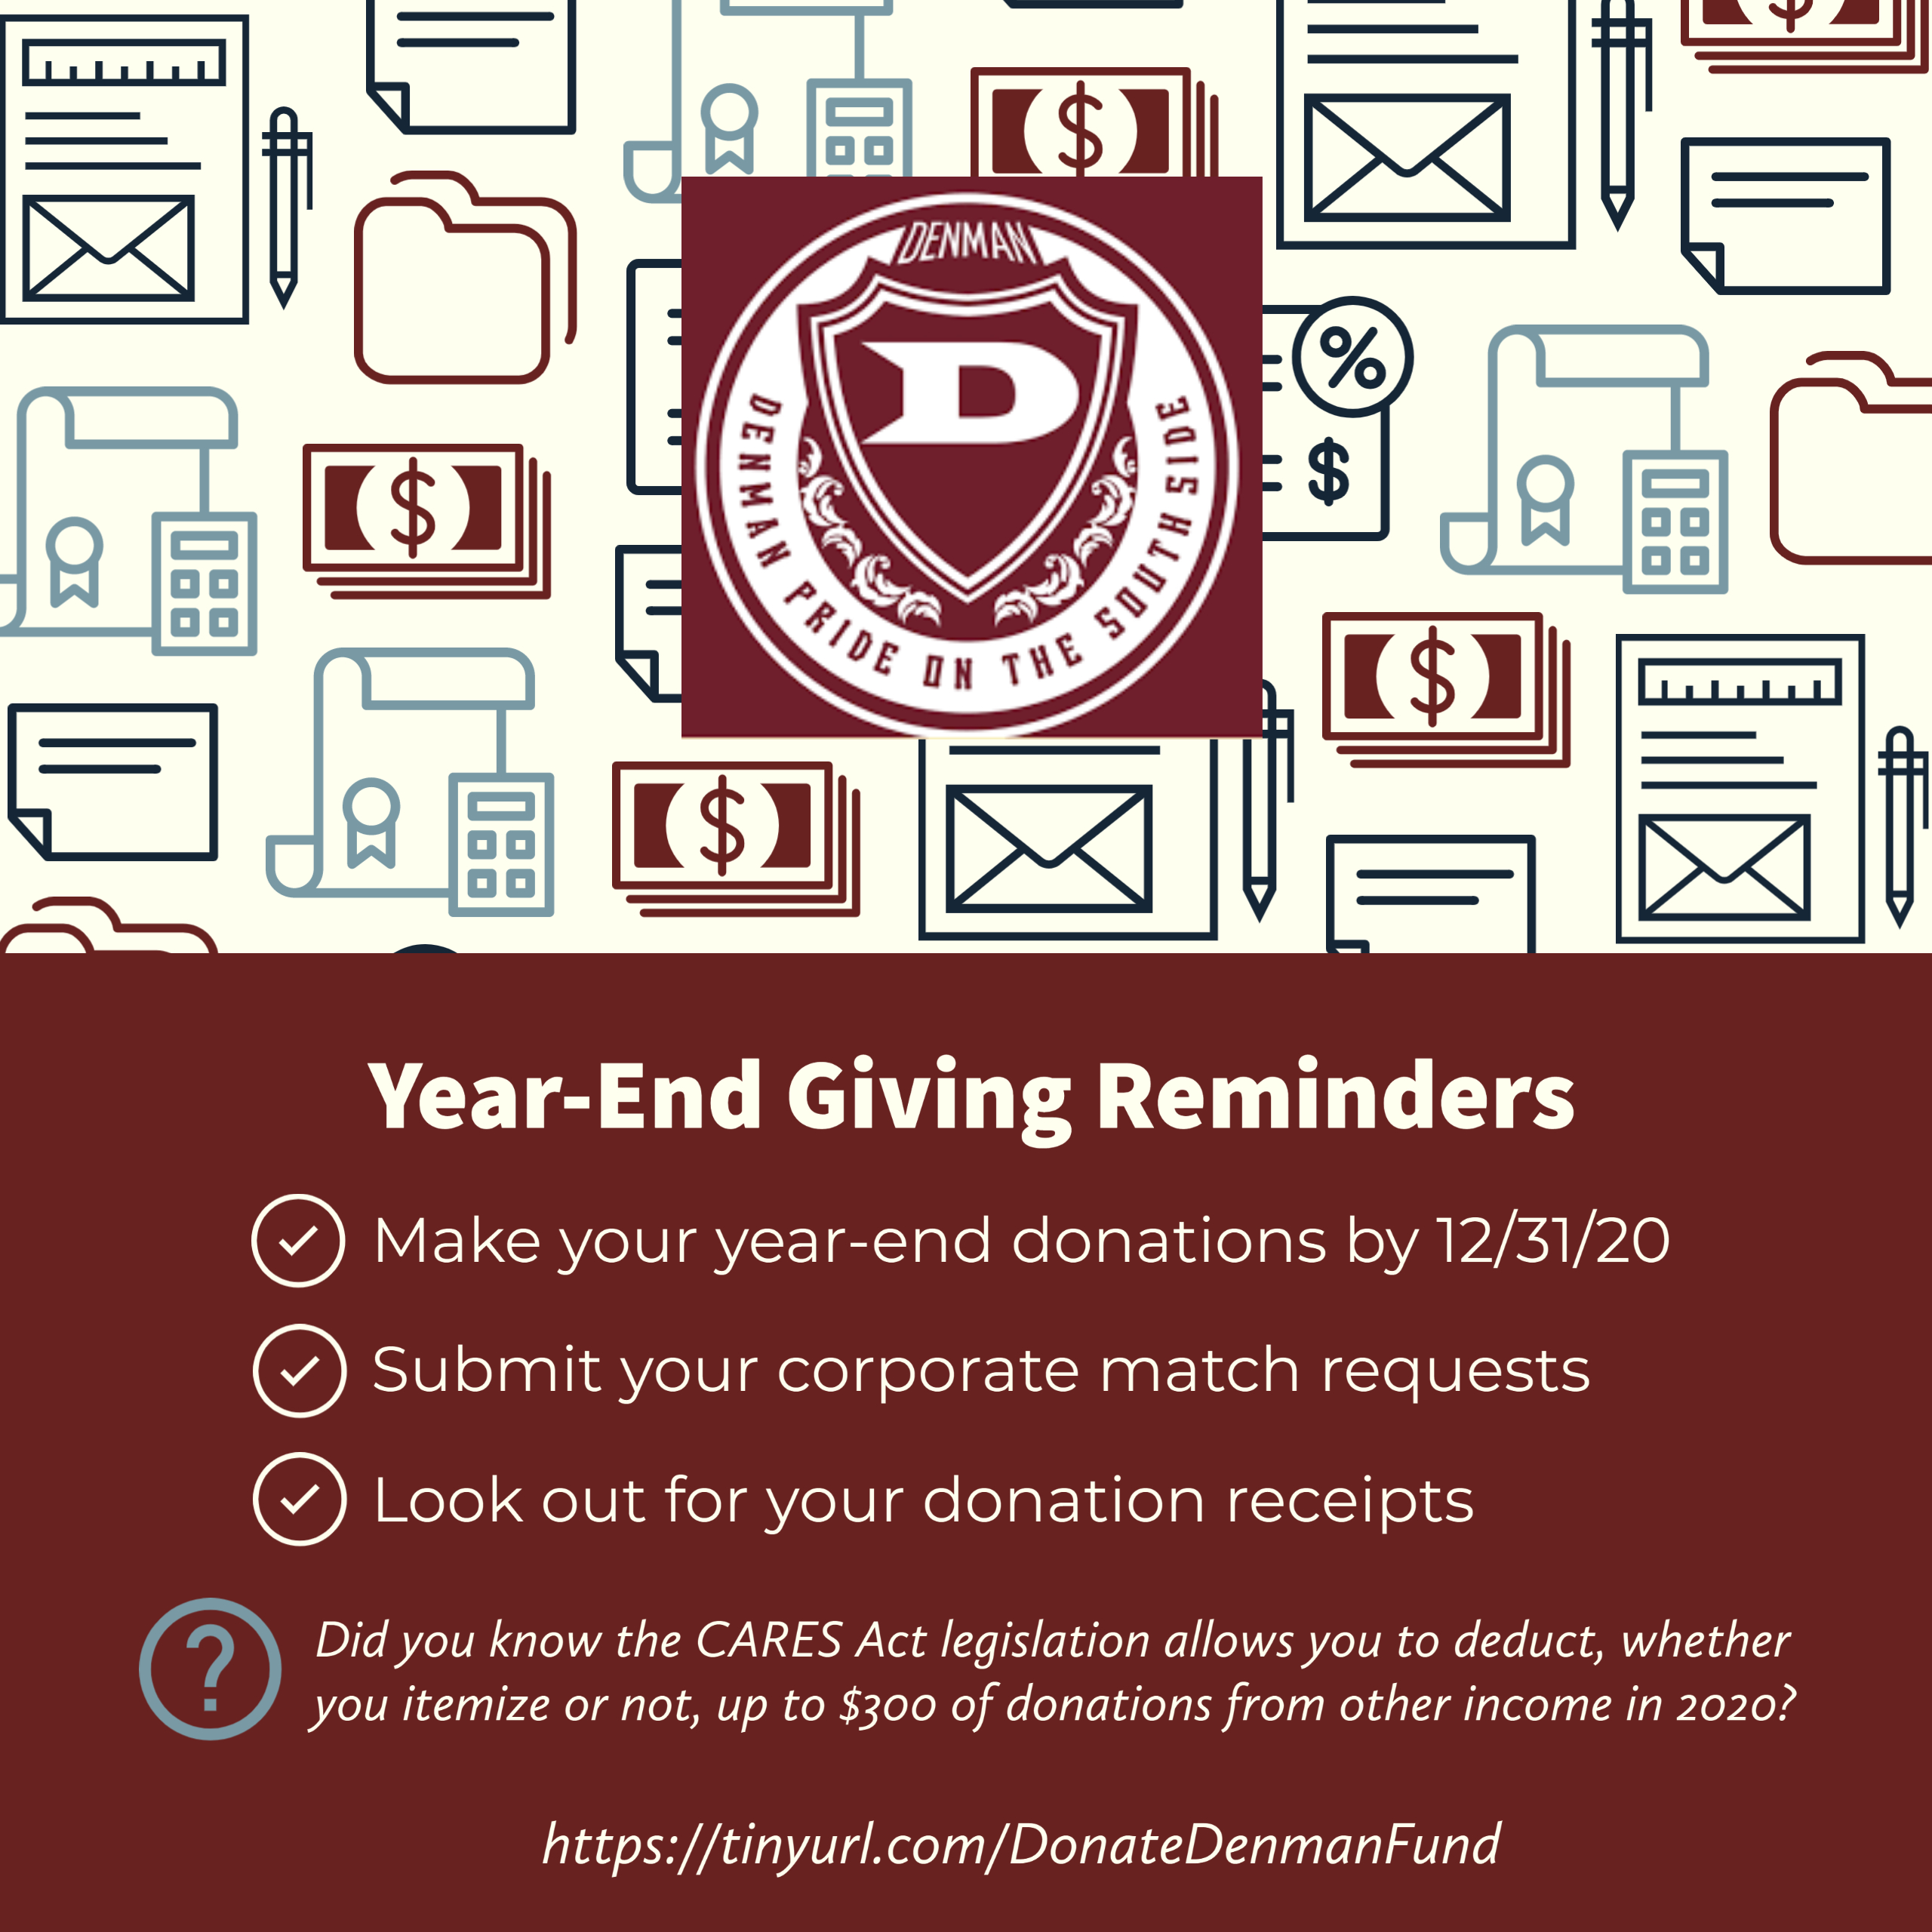 Year-End giving checklist